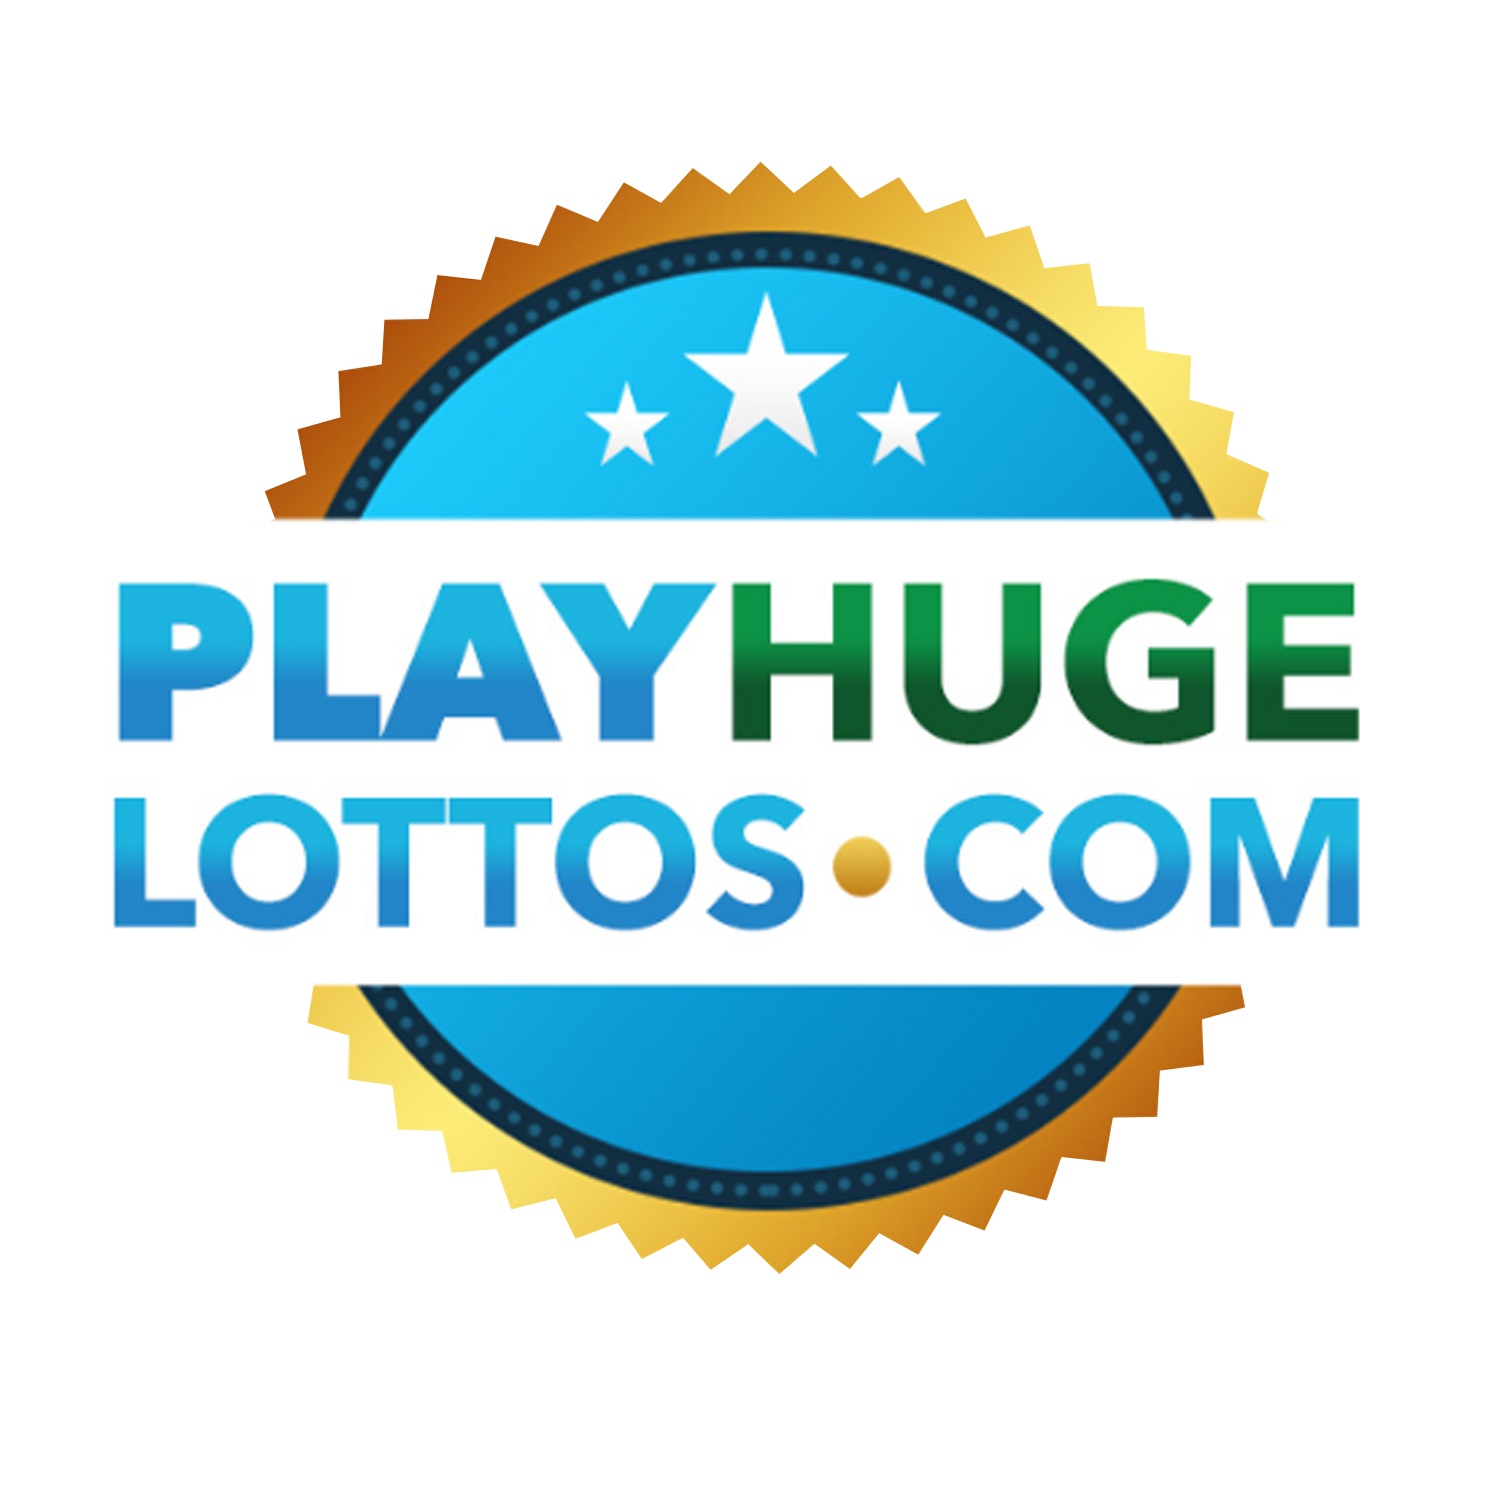 Learn about playing lotteries on the PlayHugeLottos site.